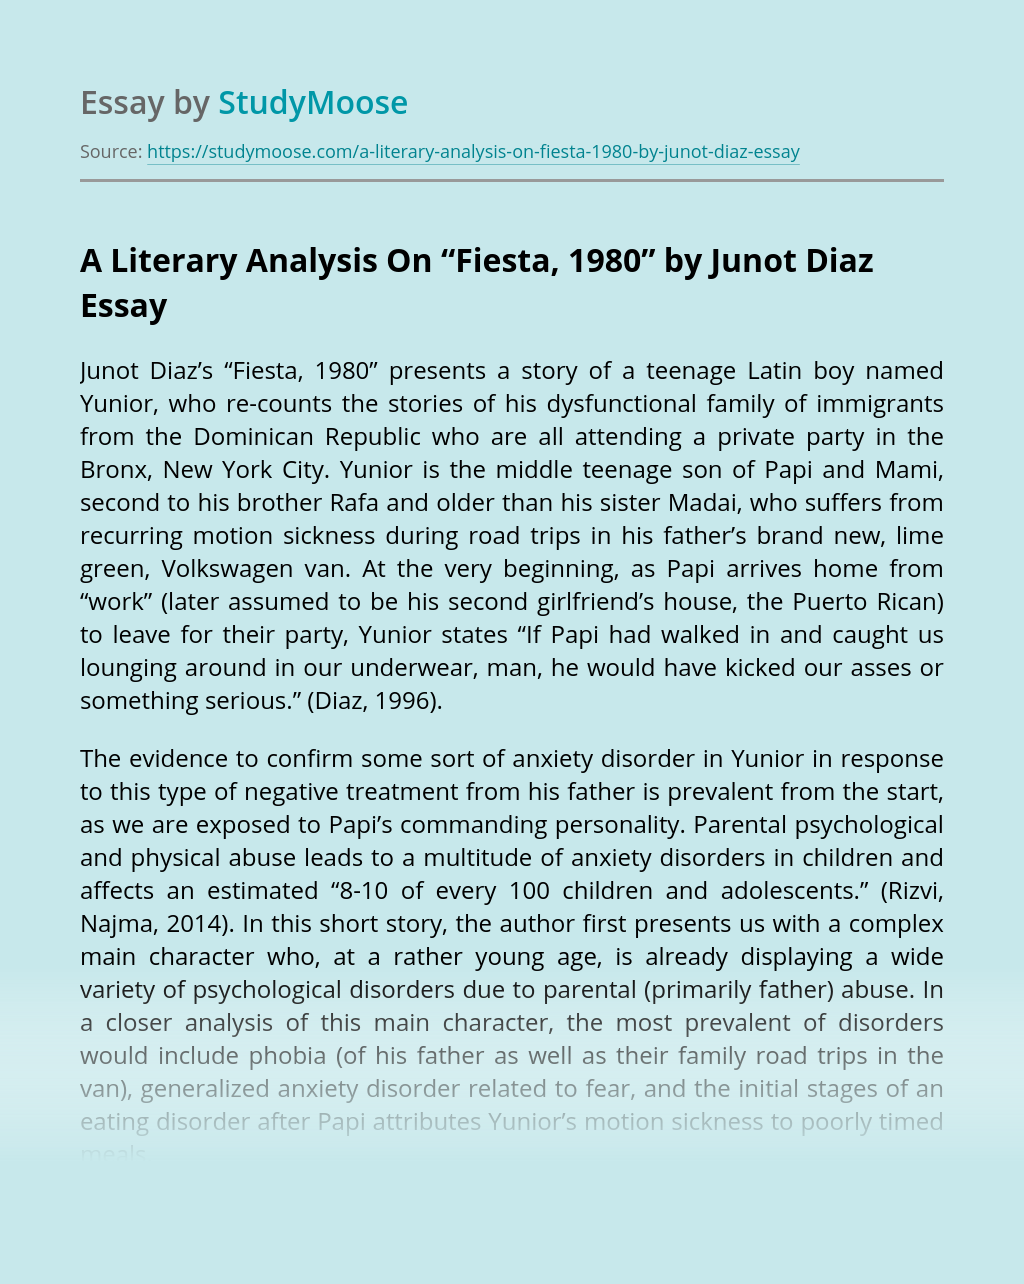 """A Literary Analysis On """"Fiesta, 1980"""" by Junot Diaz"""